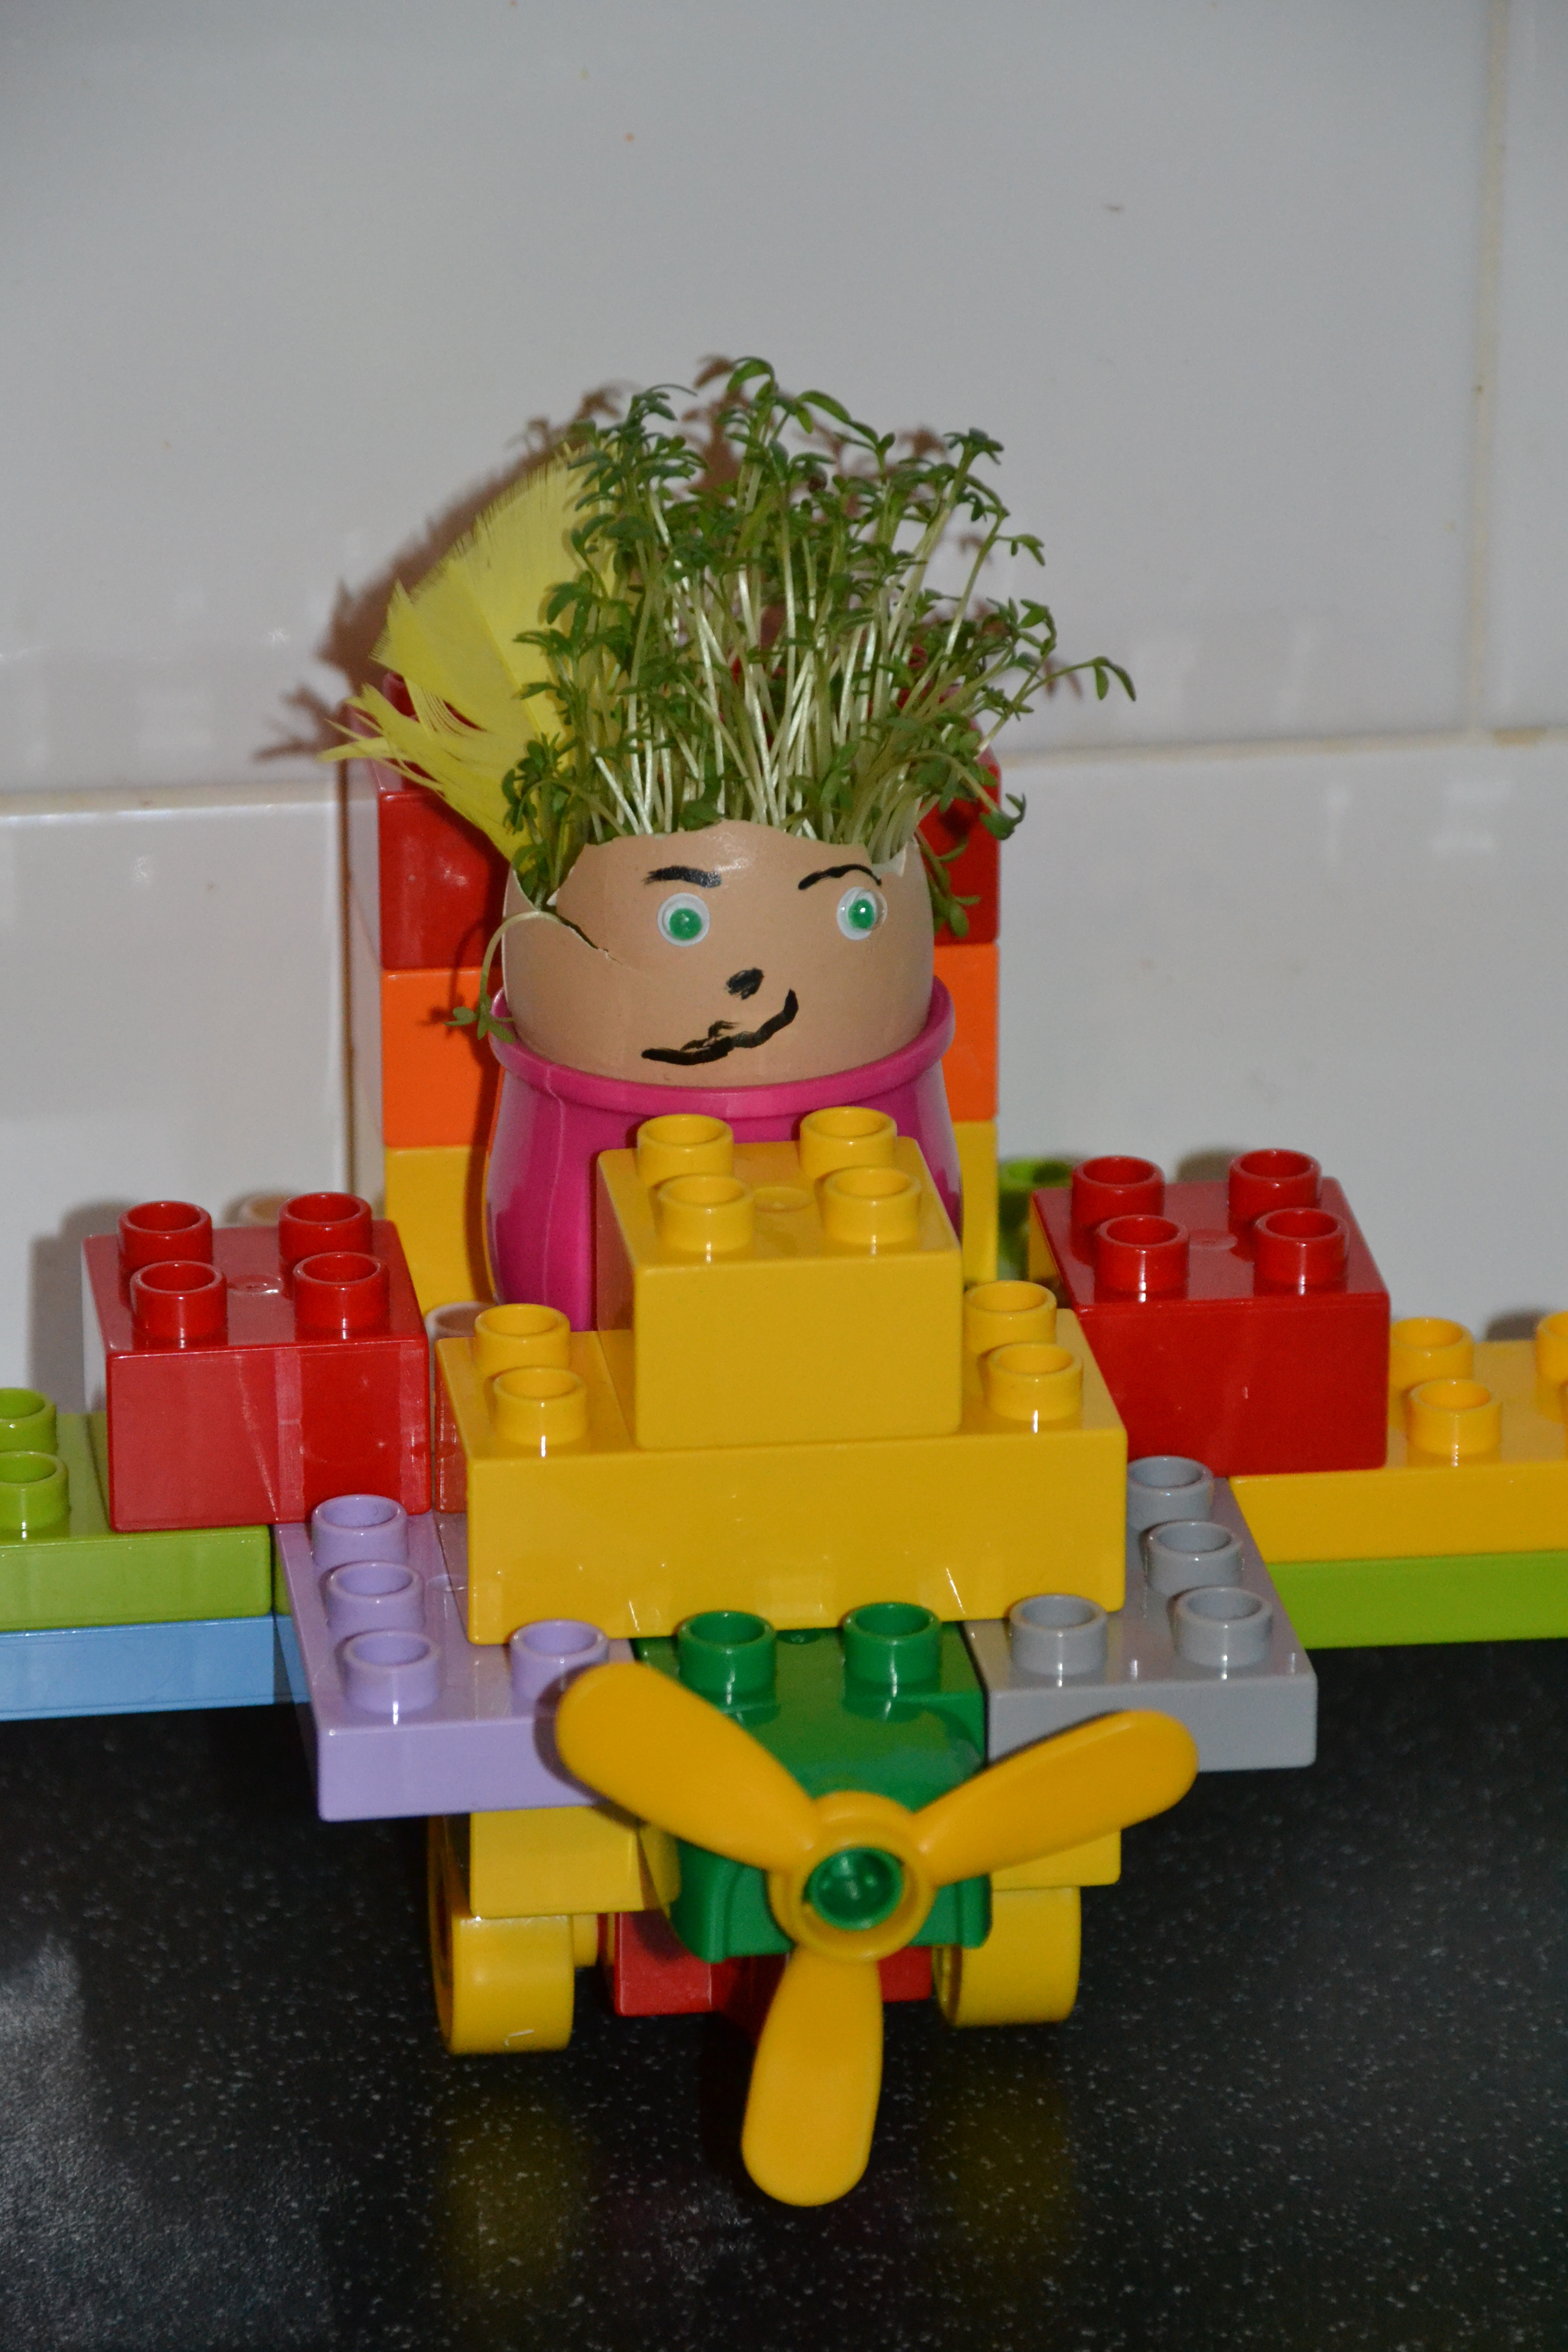 Cress in an egg and some DUPLO